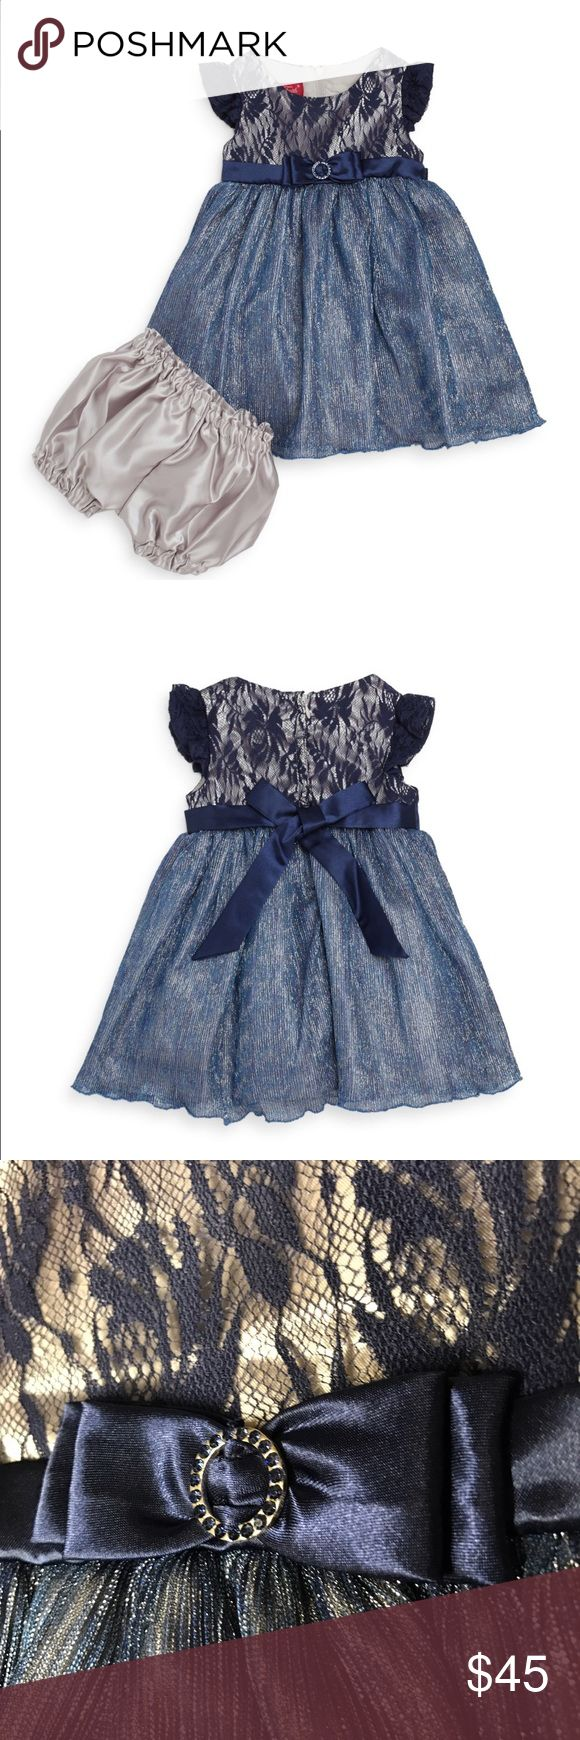 Princess Faith navy occasion dress This gorgeous dress features three layers of skirting including a row of tulle to puff it out!!  Navy with silvery threading and lace with champagne silver lining!  Perfect for photos with Santa or even the Easter Bunny, meaning it can be worn in any season!  0111111216 Princess Faith Dresses Formal